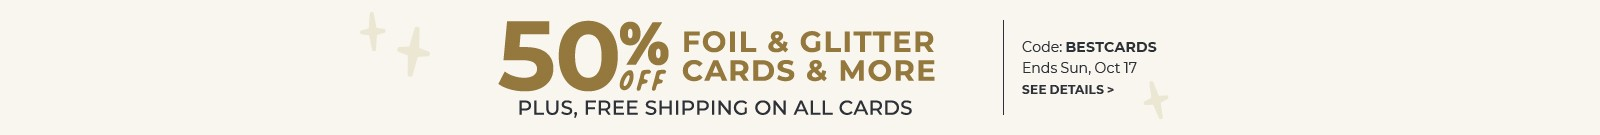 50% off foil & glitter cards & more, plus free shipping on all cards, code: BESTCARDS, Ends Sun, Oct 17, see details